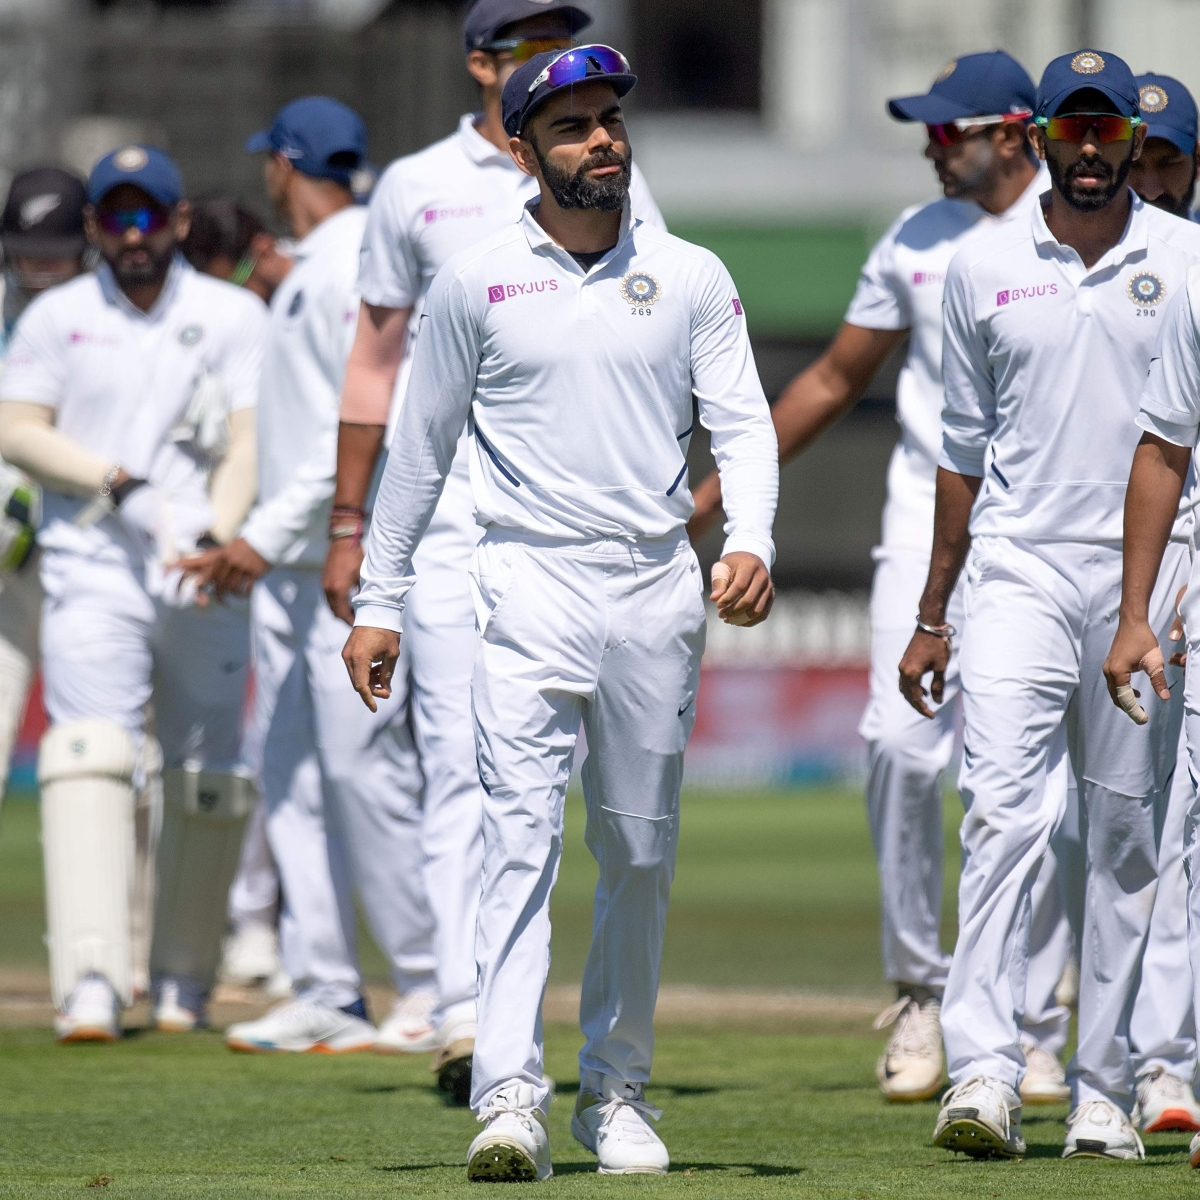 NZ vs IND: Visitors flushed at Basin